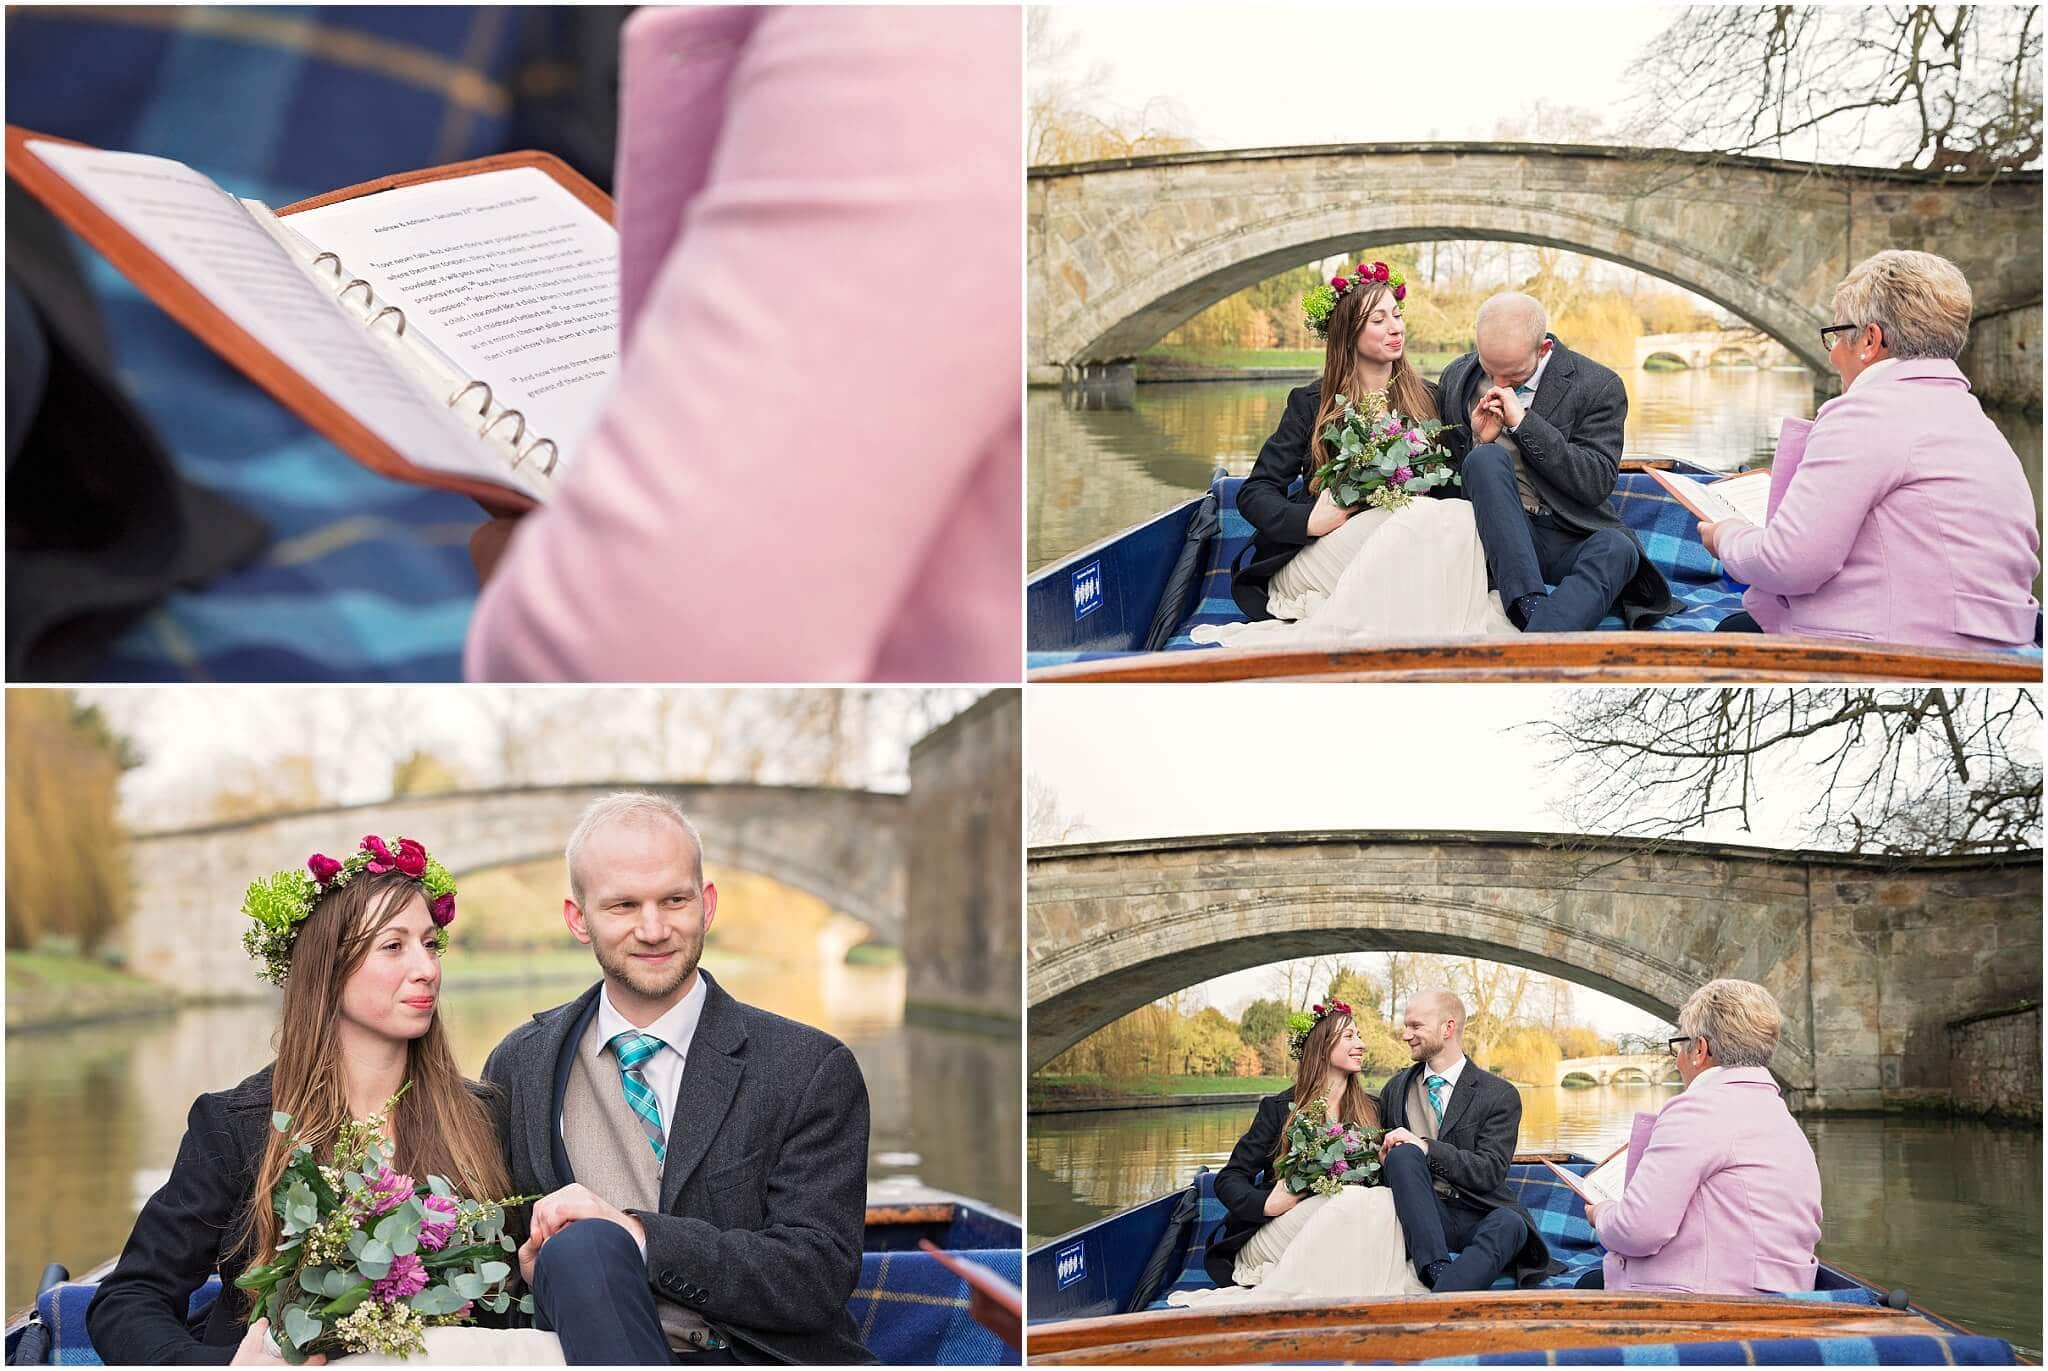 Winter Elopement in Cambridge